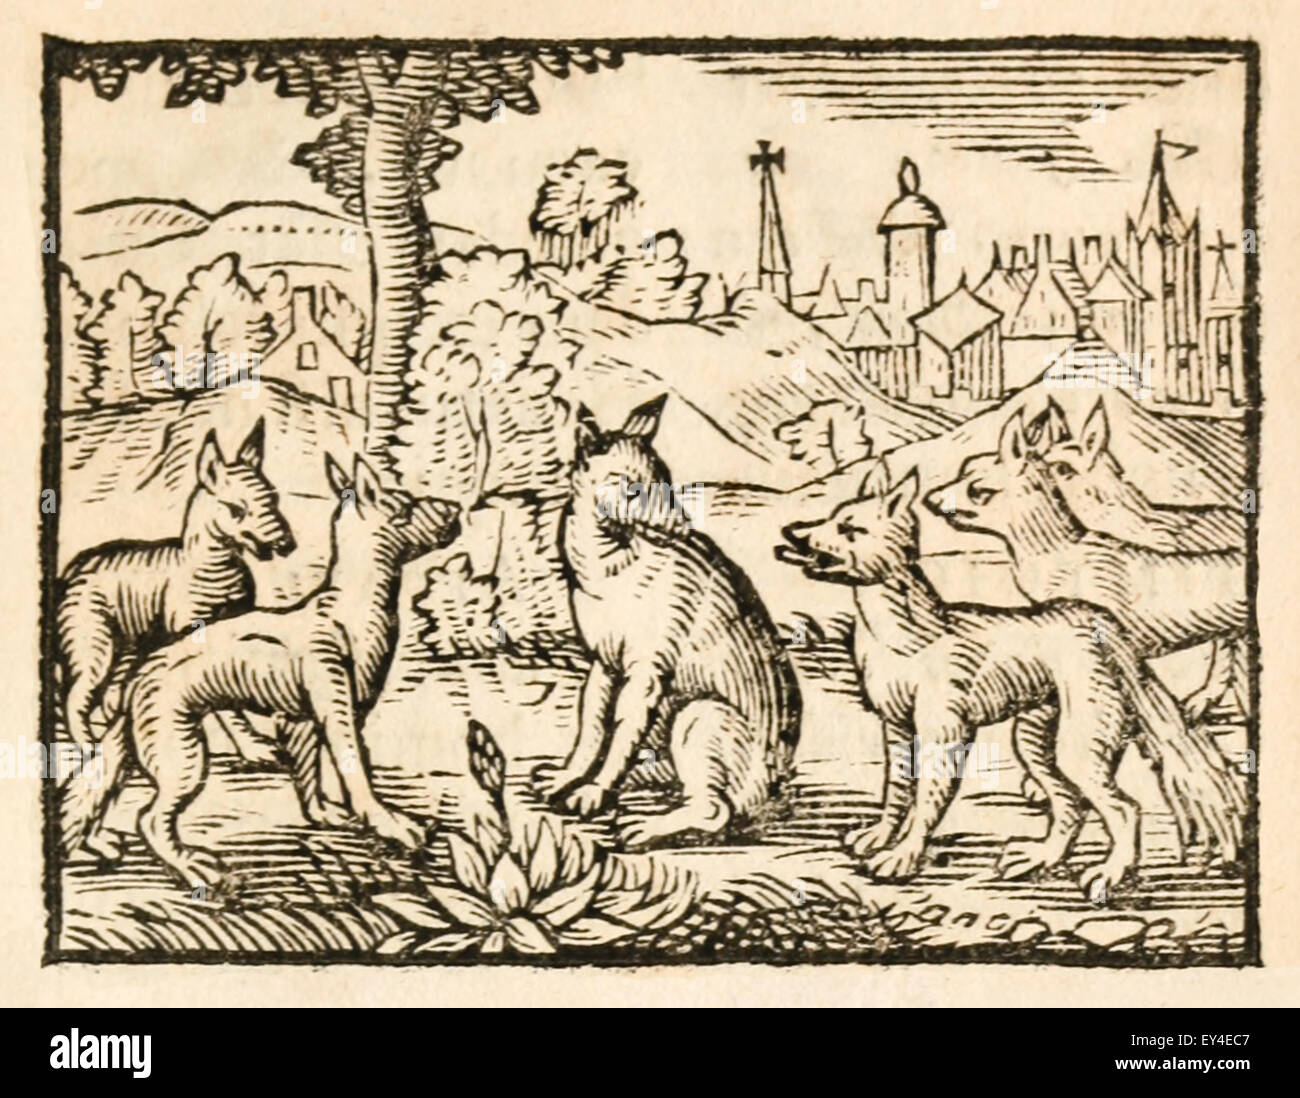 'The Foxes and their Tails' fable by Aesop (circa 600BC). A fox got its tail cut off and tried to persuade - Stock Image